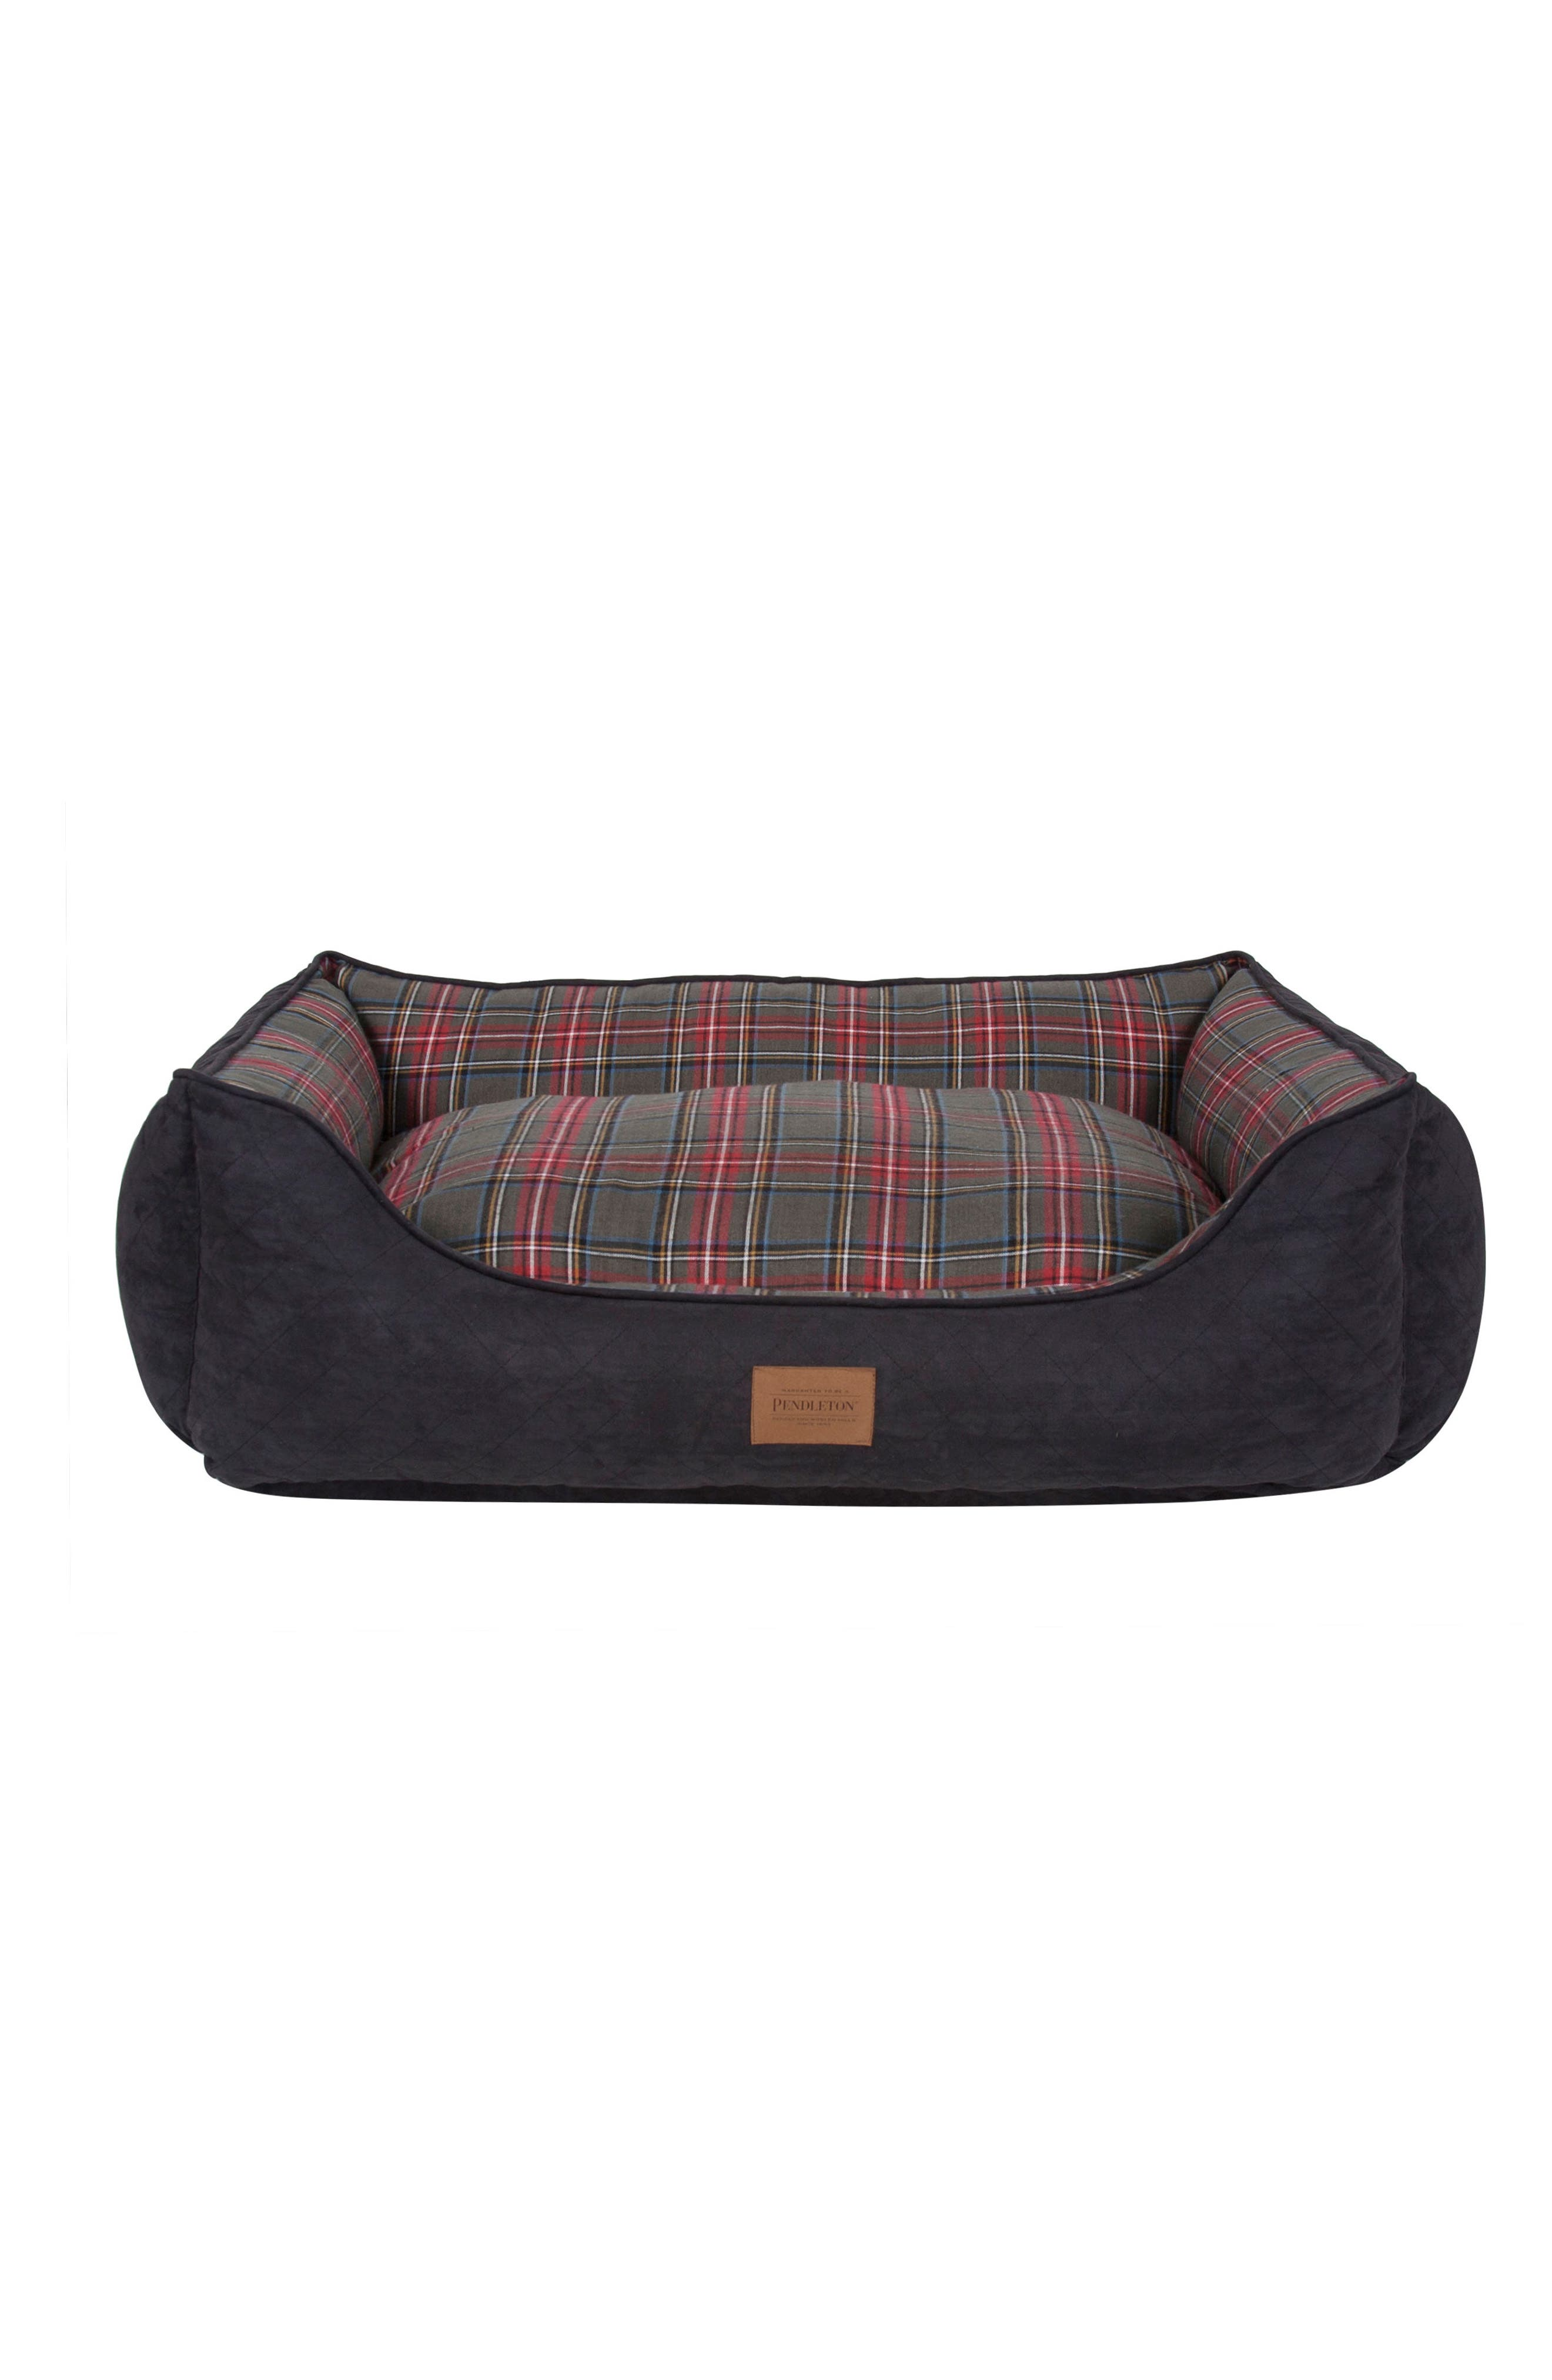 Alternate Image 1 Selected - Carolina Pet Company x Pendleton Classics Kuddler Pet Bed